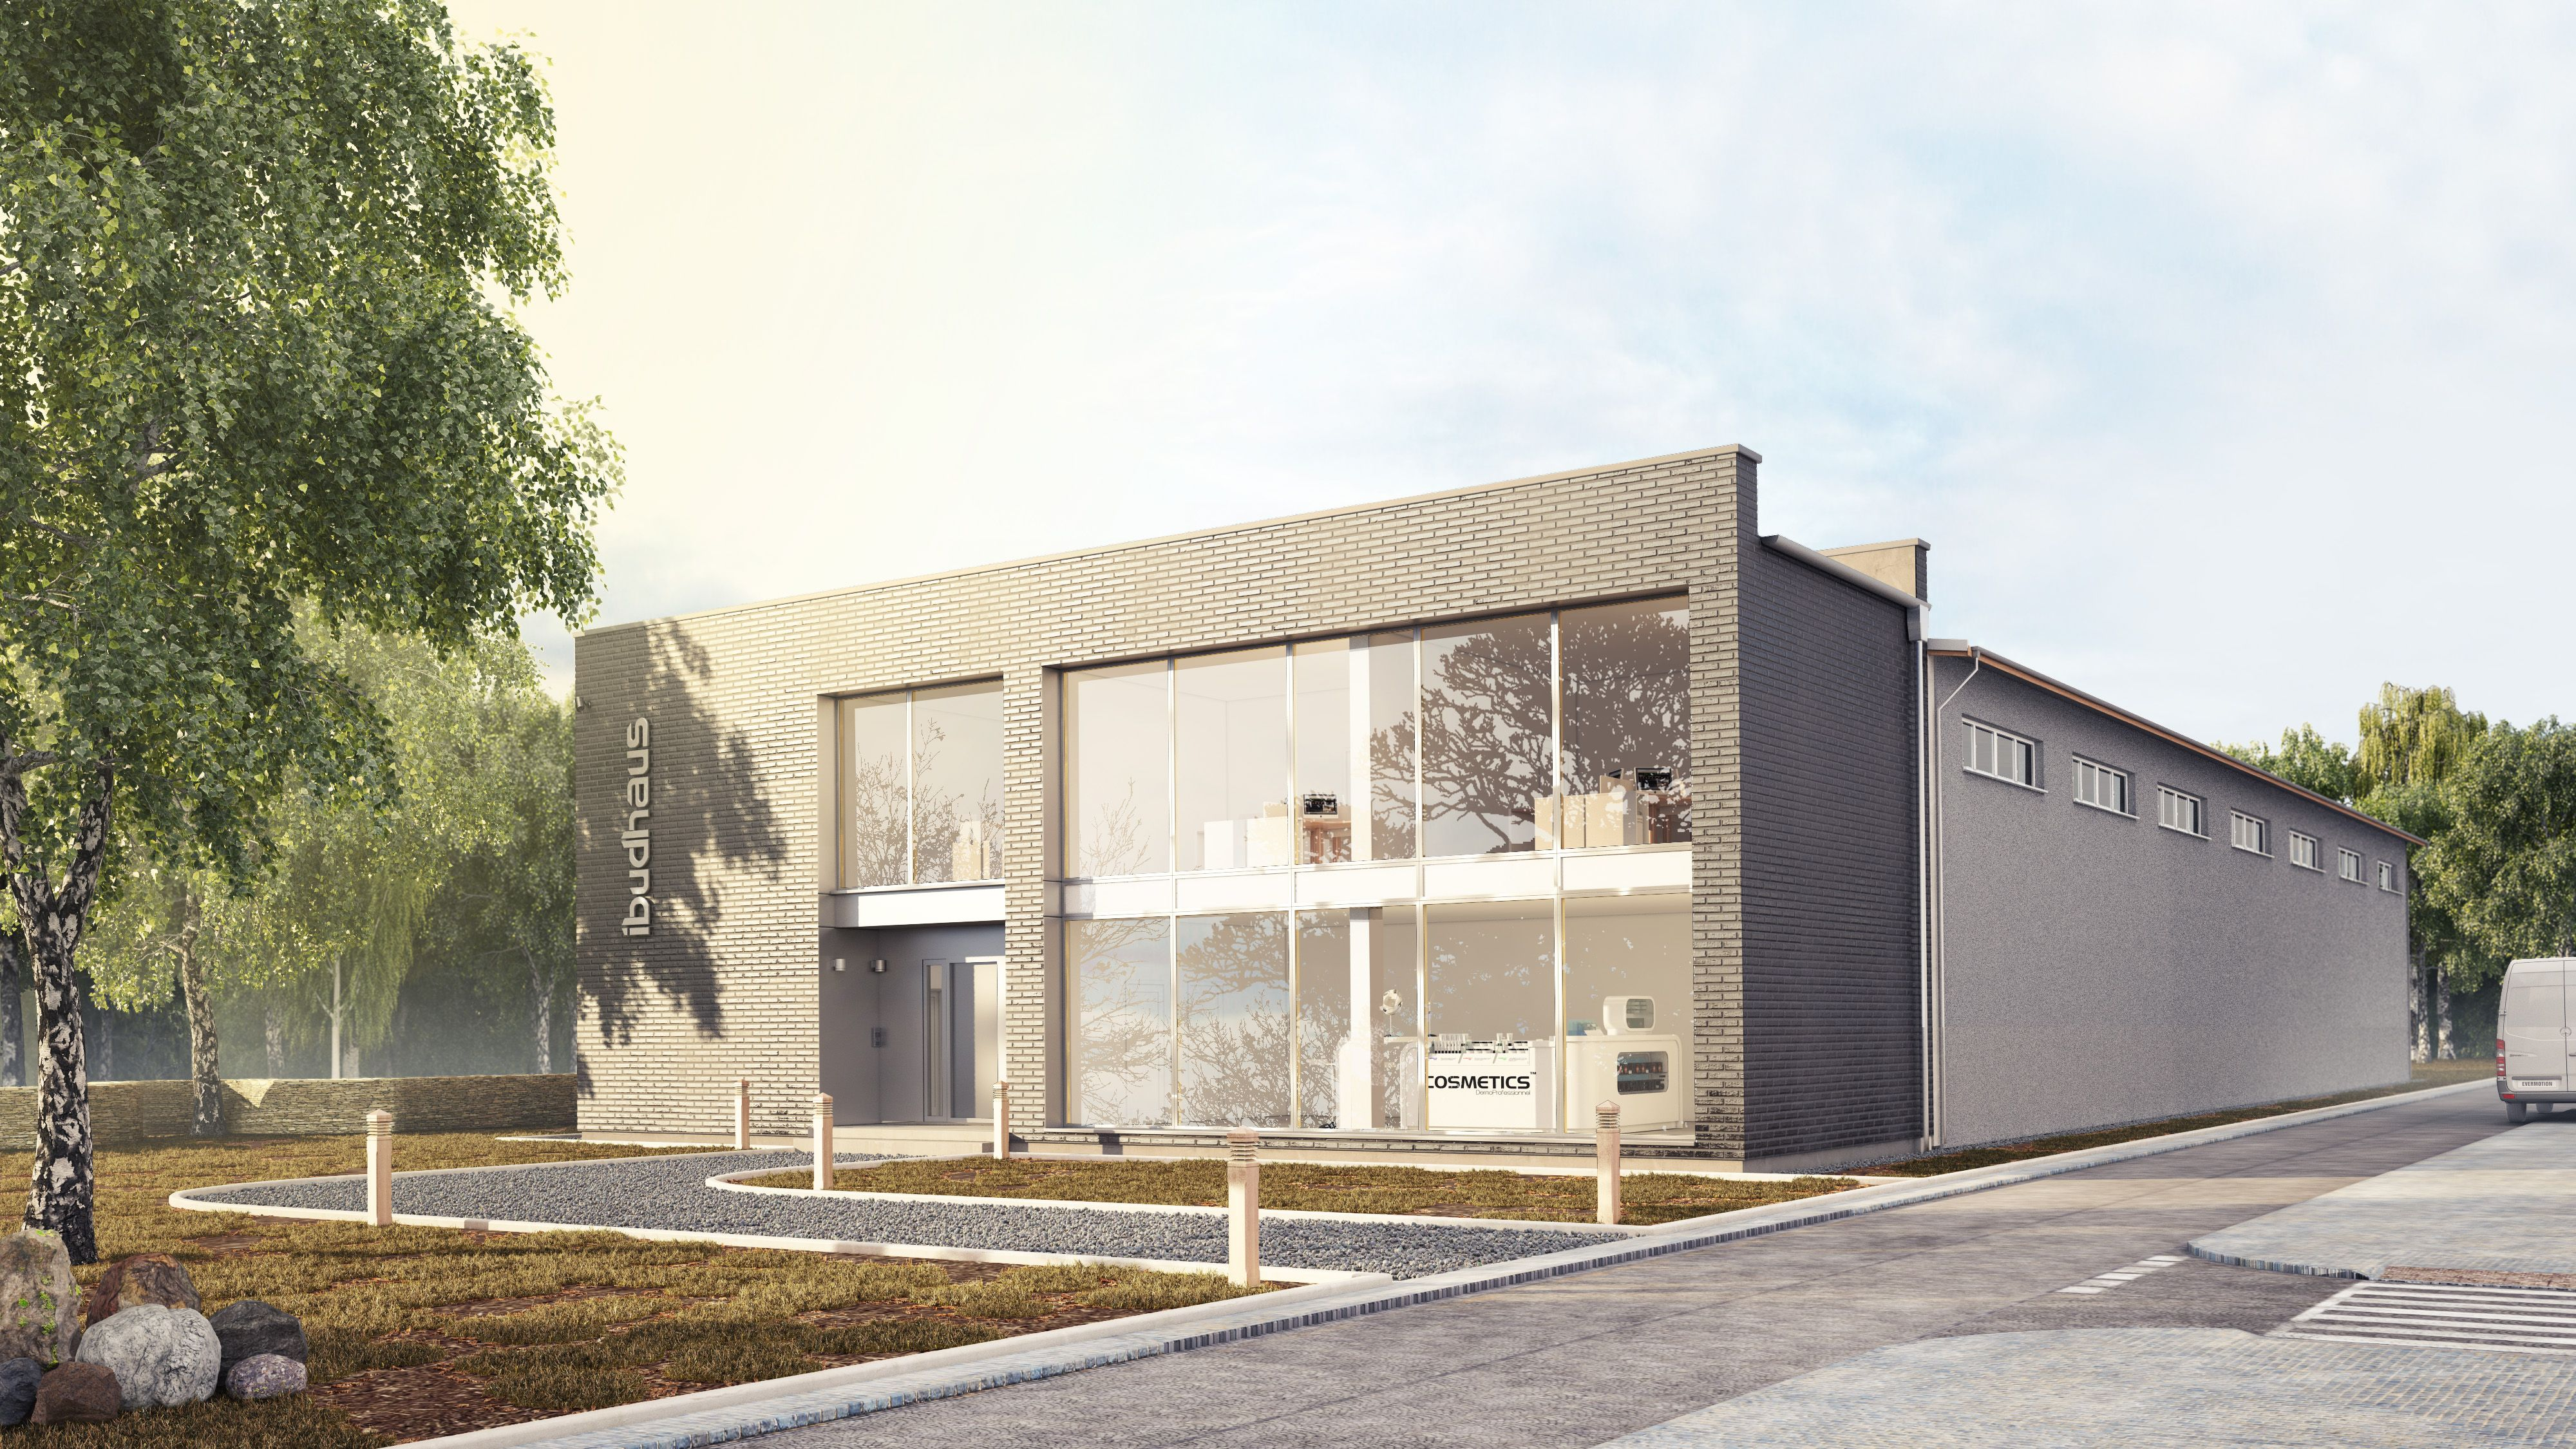 Exterior Warehouse rendering   Architectural 3D Visualization ...